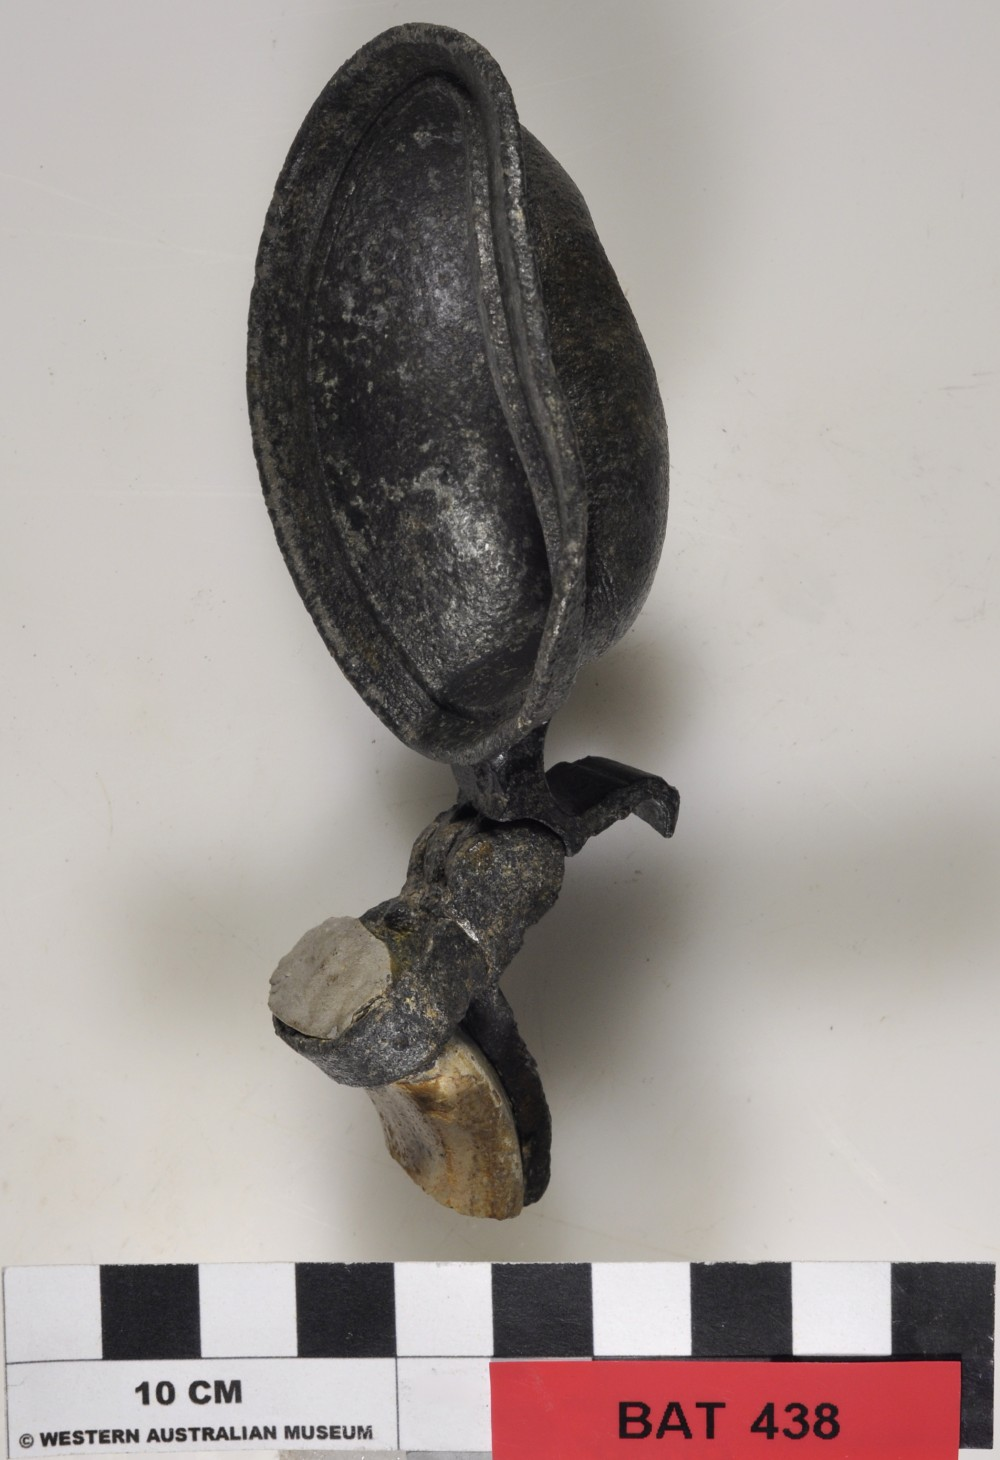 Pewter artefact recovered from Batavia